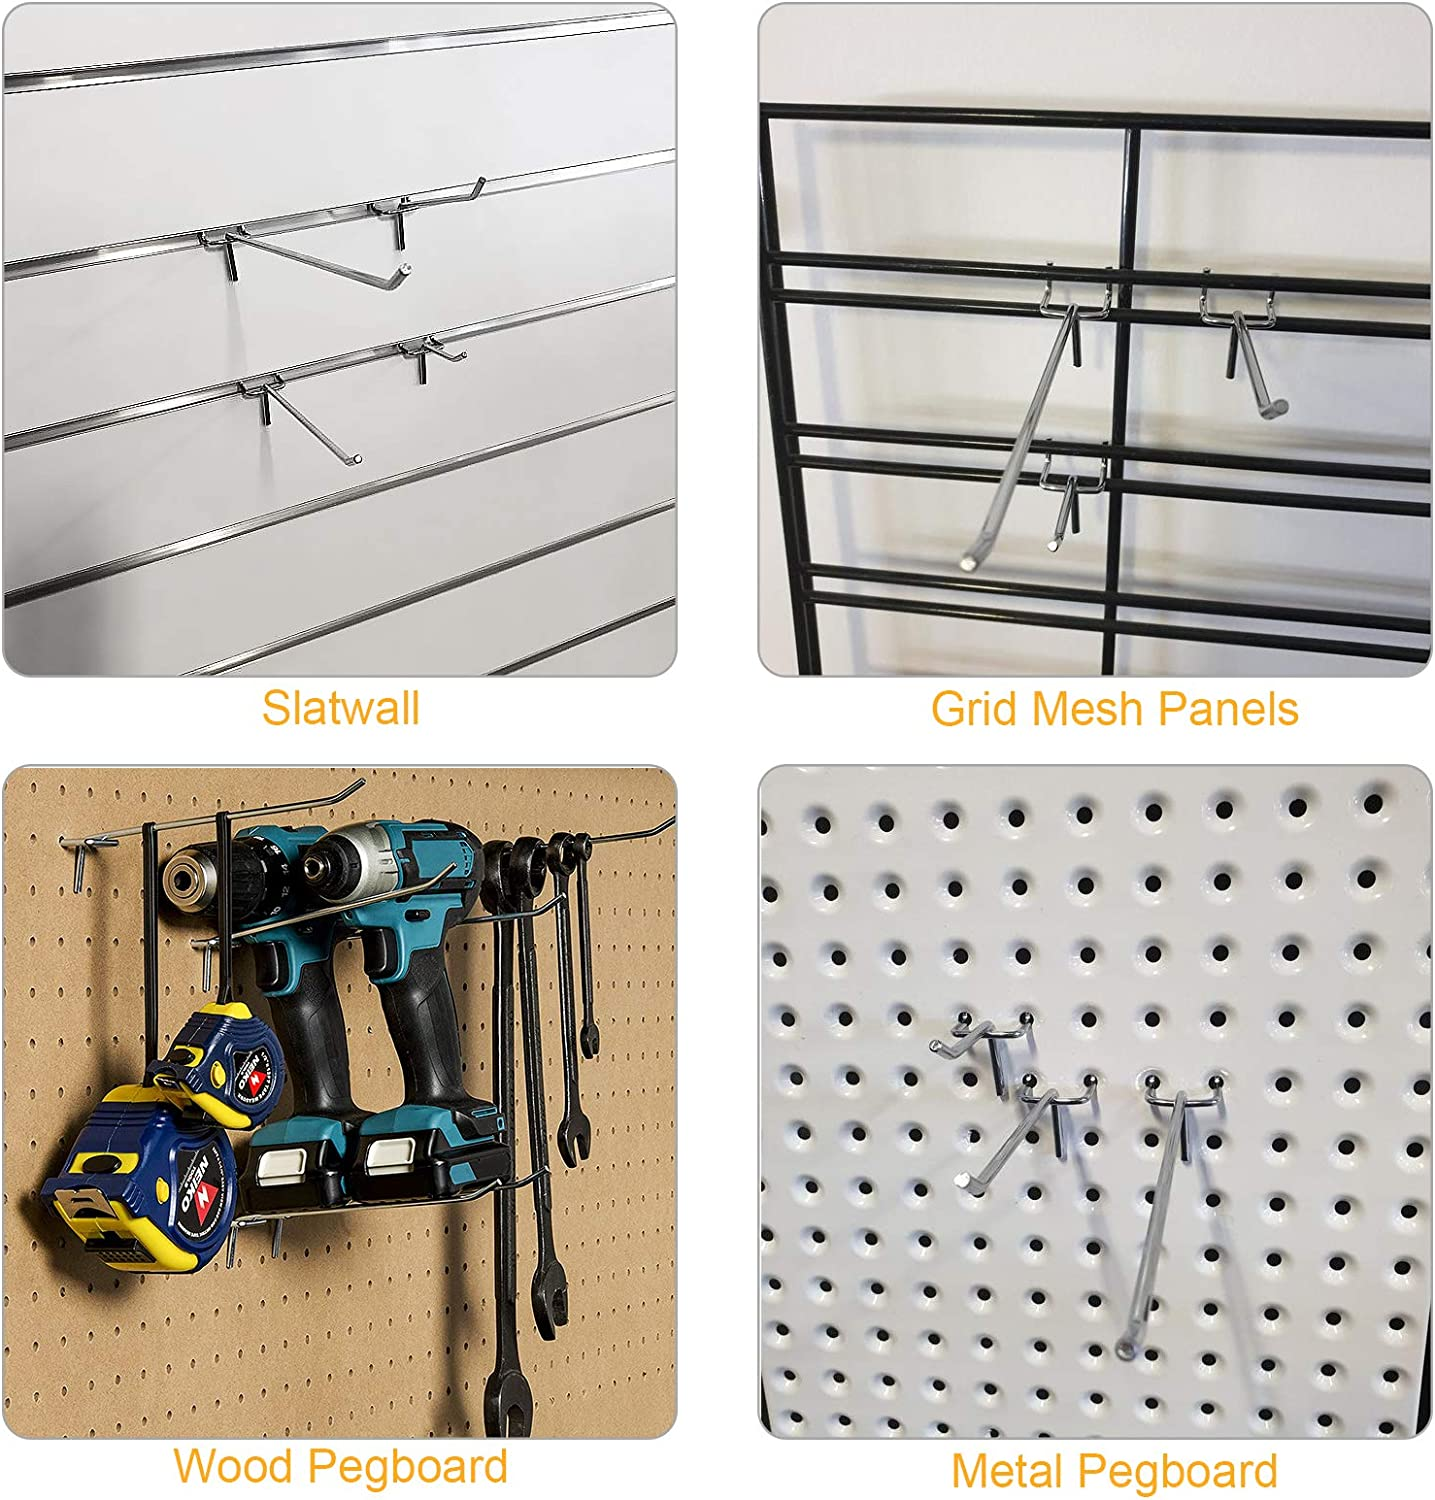 "6 inch 60Pcs Pegboard Shelving Hang Hooks Assortment for 1//8/""Metal Perforated Pegboard AConnet Metal Pegboard Hooks 2//4 20Pcs Per Size"